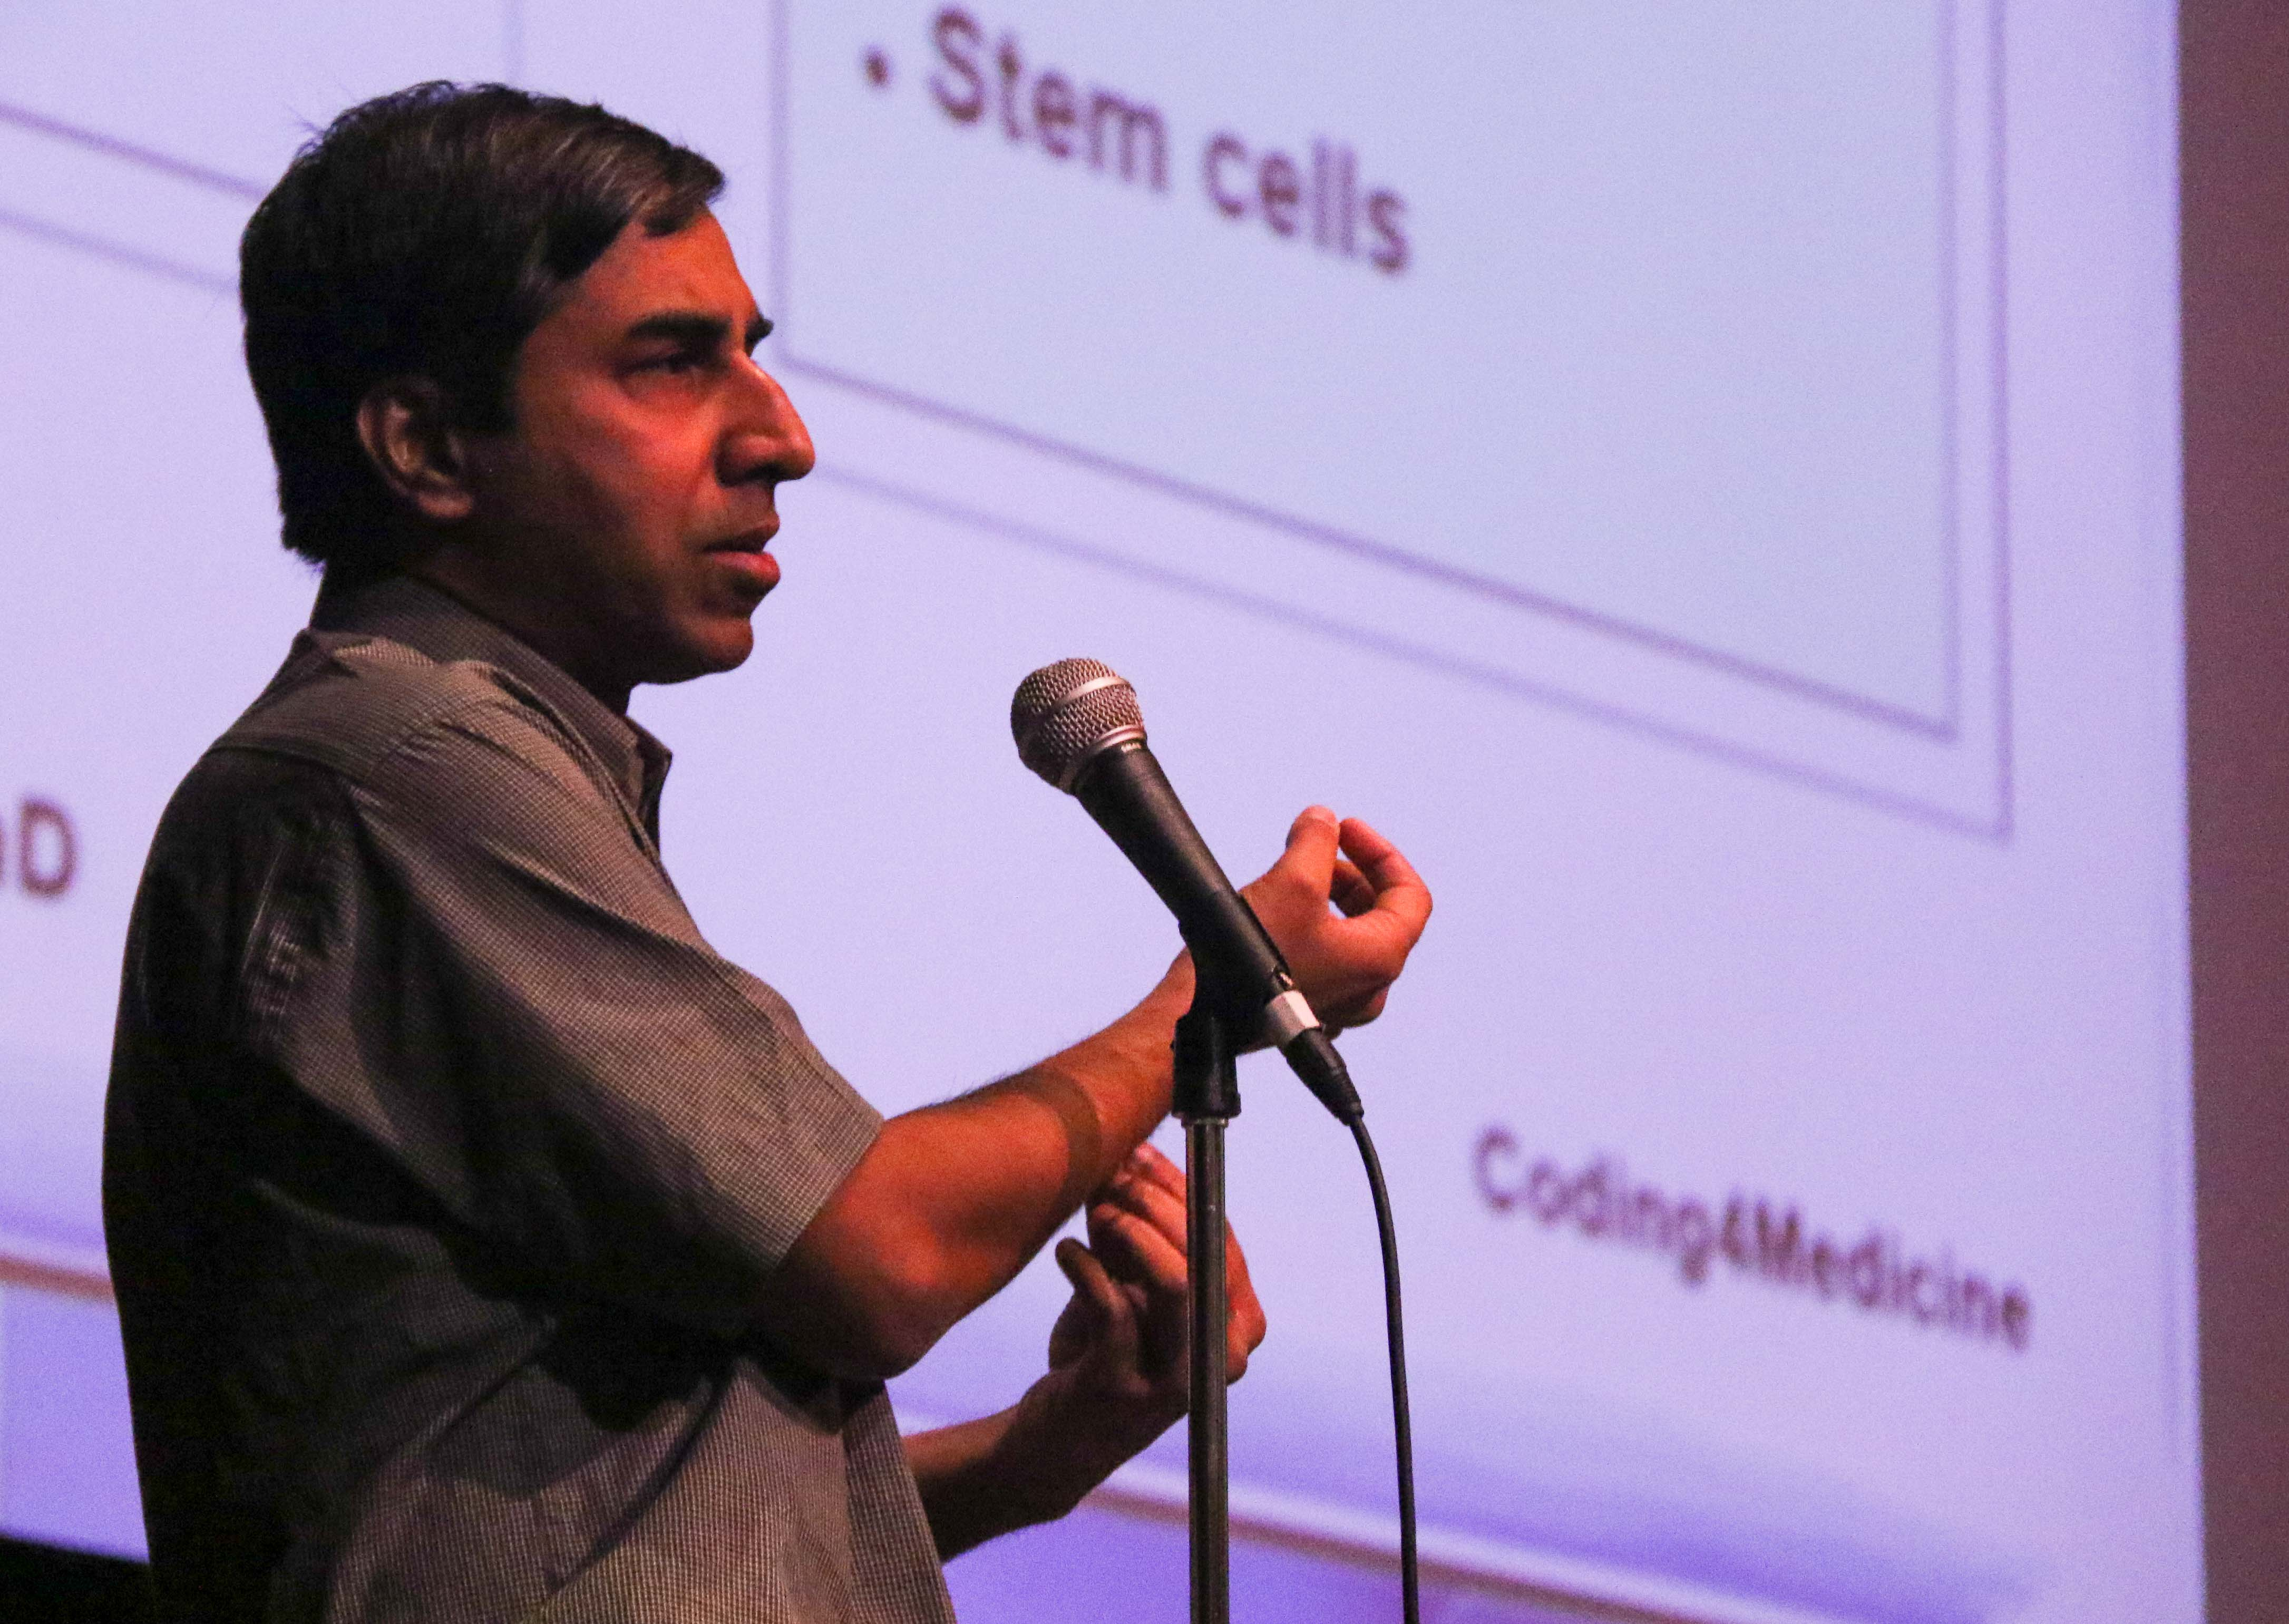 Nuclear scientist Manoj Pratim Samanta paid a visit to the MTHS theater during PASS period to inform students on his summer workshop that will be held in July at the Bellevue College. His introductory presentation covered topics such as DNA coding and STEM cell modification.